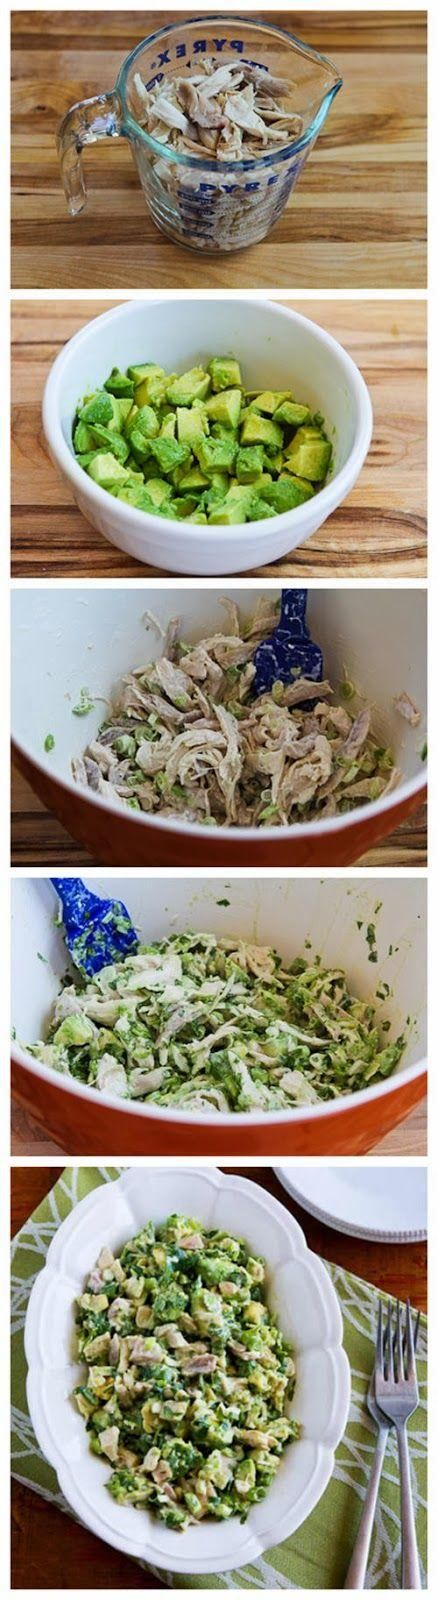 Chicken and Avocado Salad with Lime and Cilantro - Love with recipe